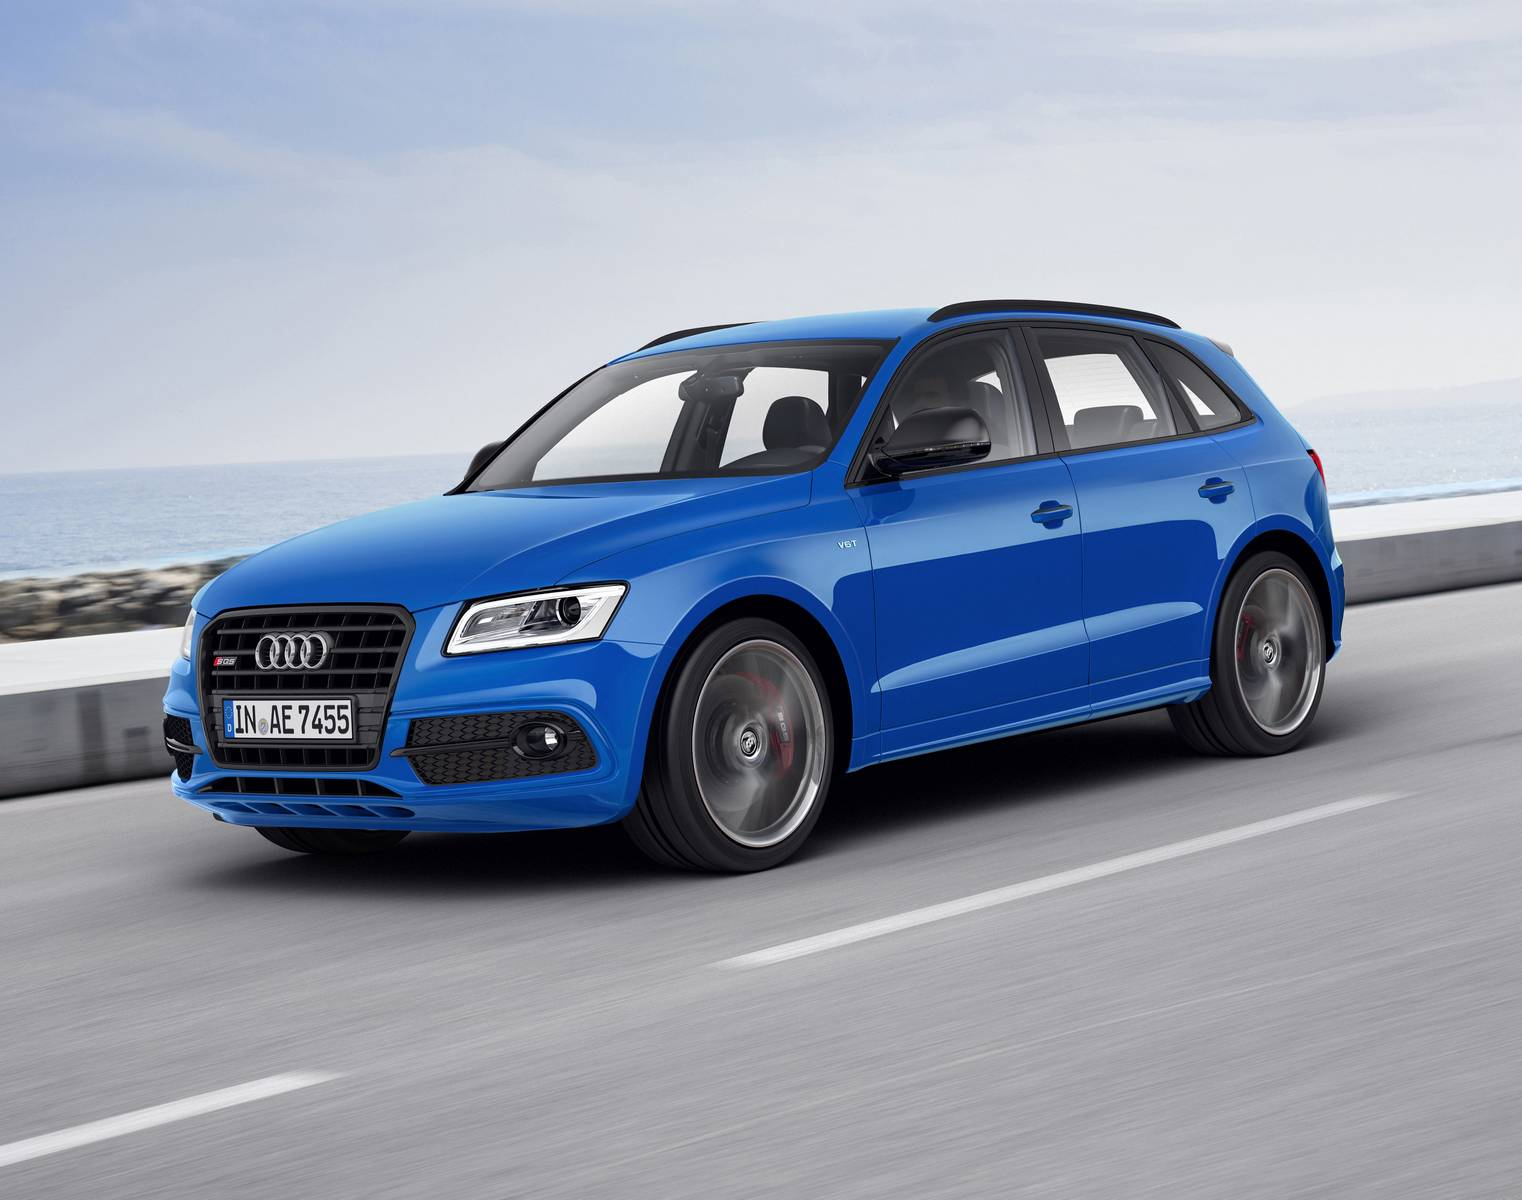 Official 2016 Audi Sq5 Tdi Plus Gtspirit